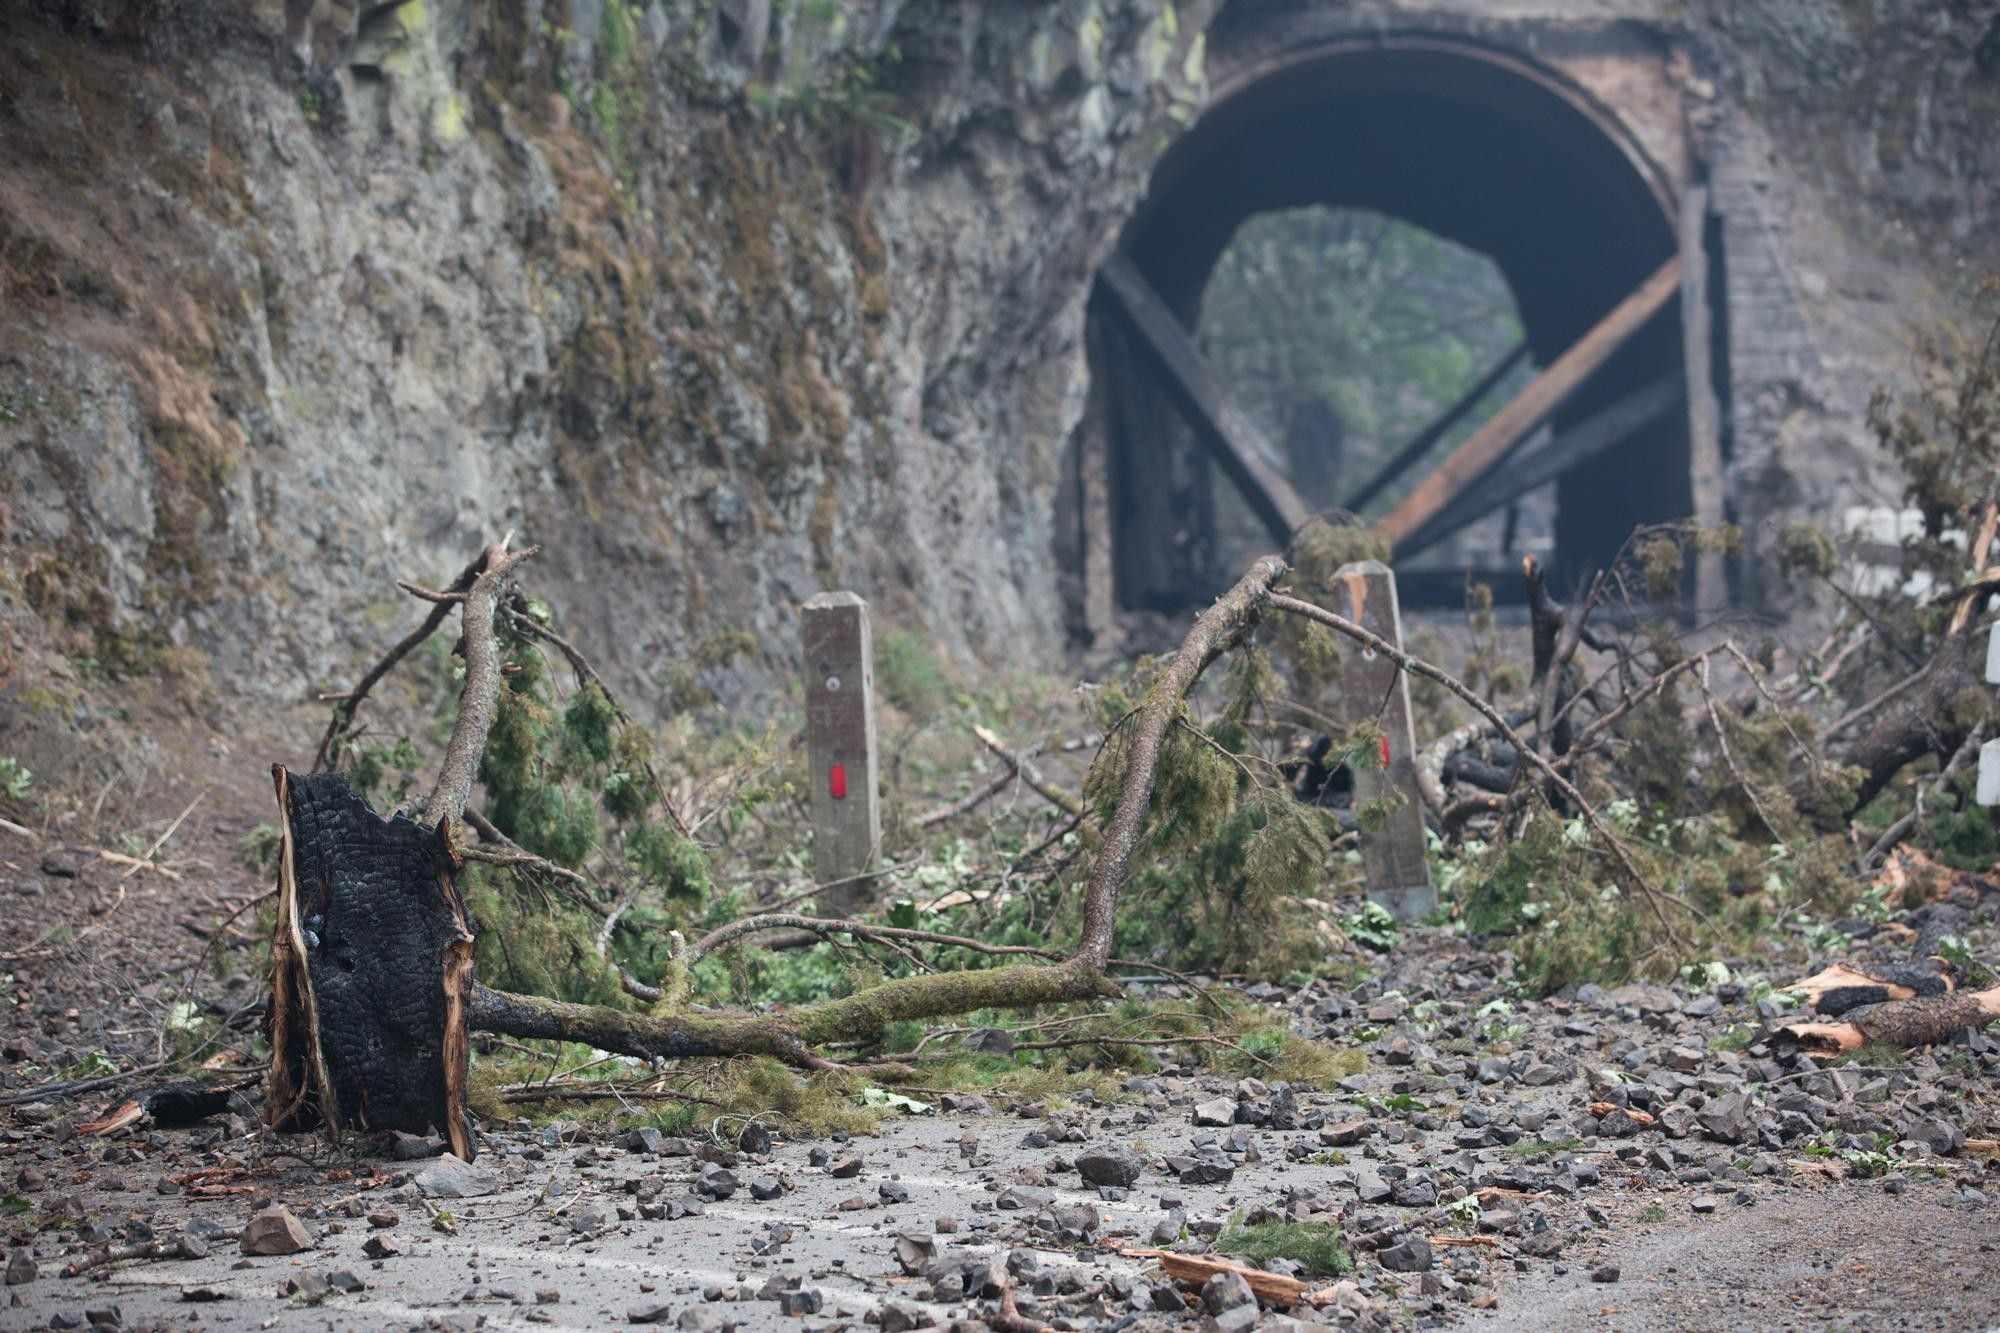 Aftermath Photos of Multnomah Falls Fire